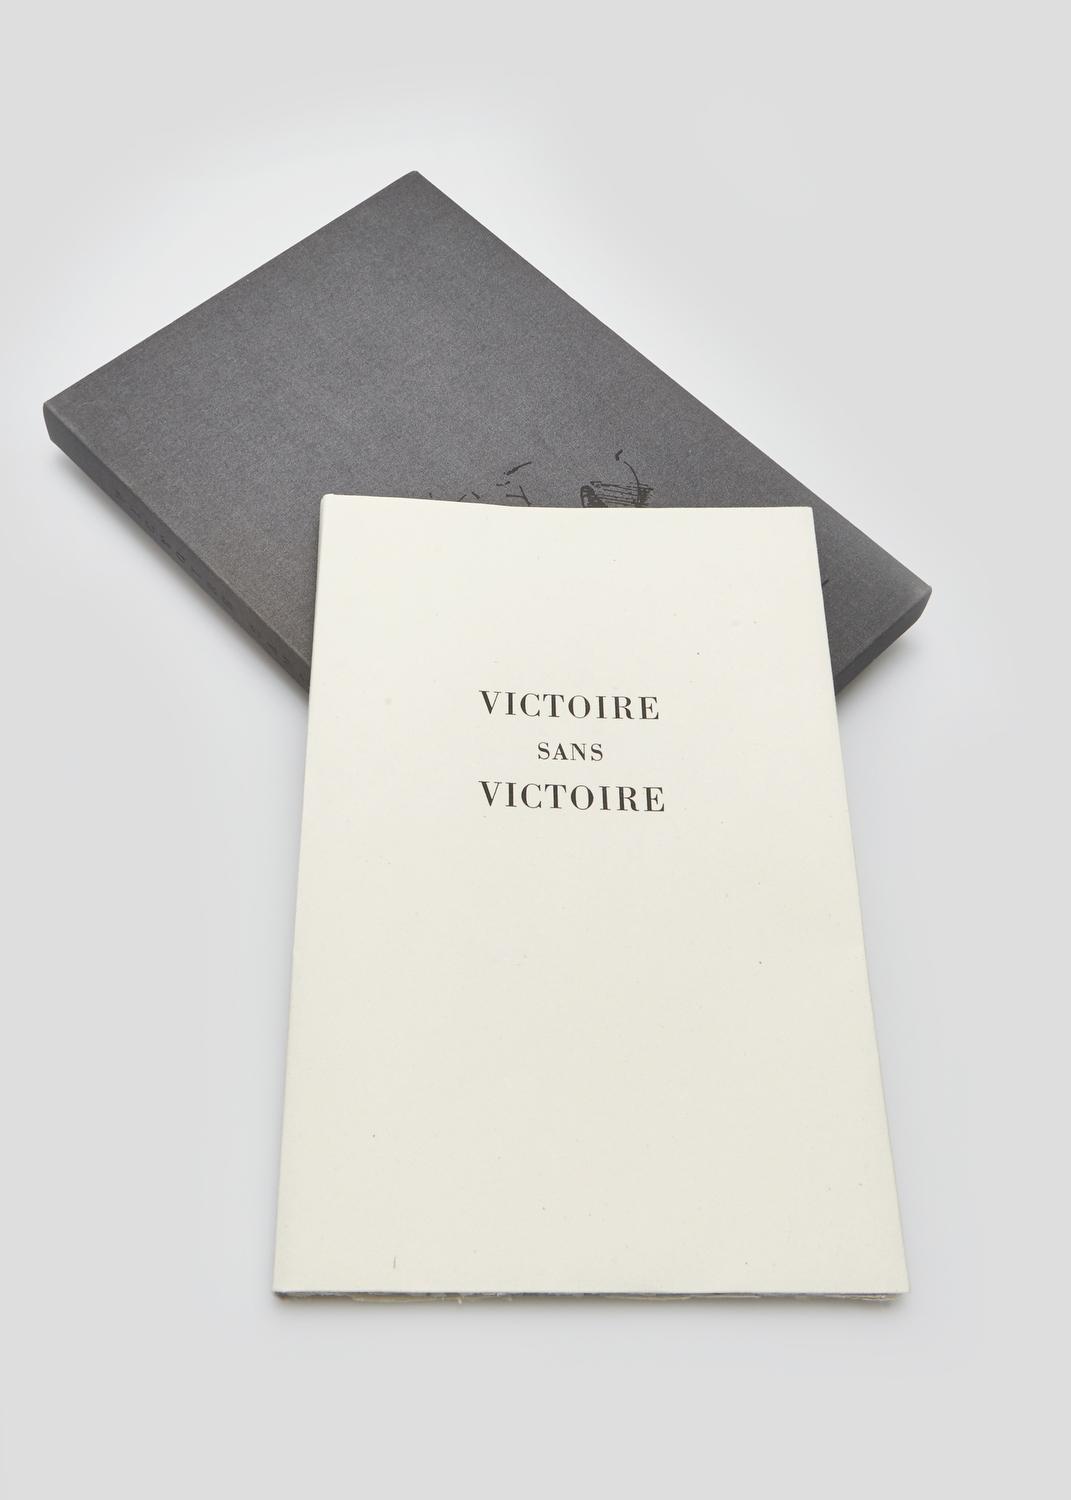 Victoire sans victoire    Text by André Velter and engraving by Alain Bar  1989 | 31 x 21 cm | engraving and typography | 103 prints | editor Ex-Libris